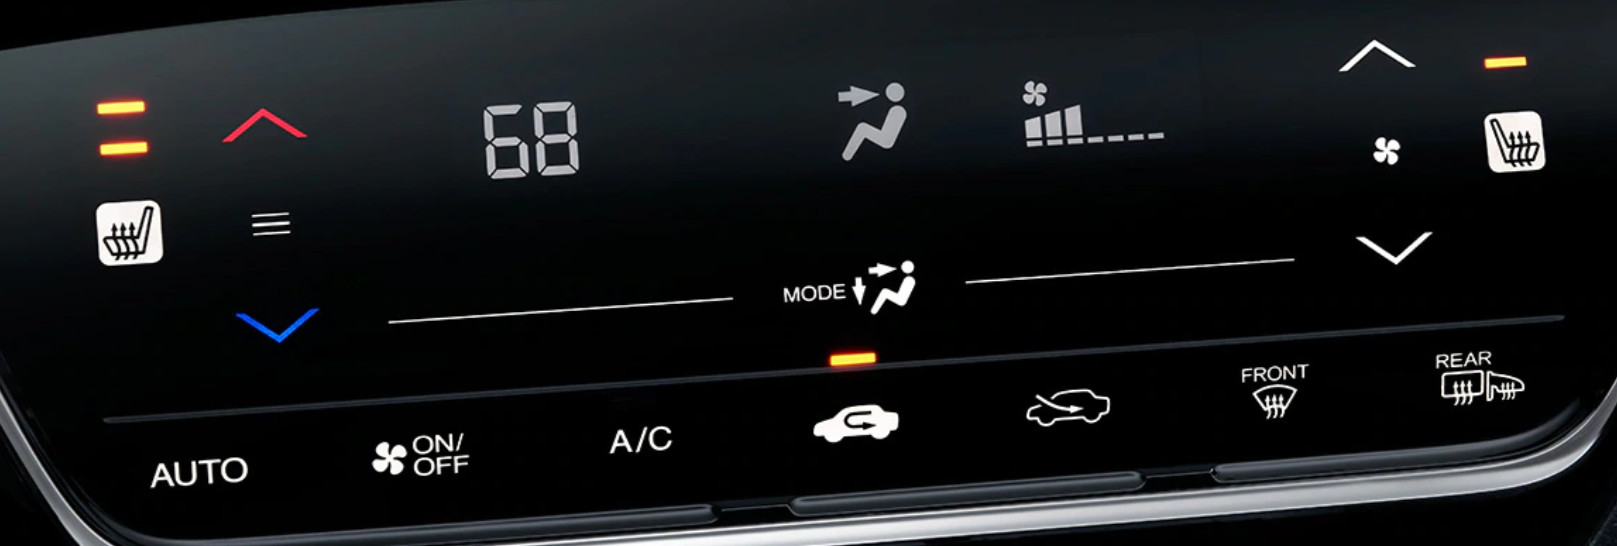 2020 HR-V Automatic Climate Control